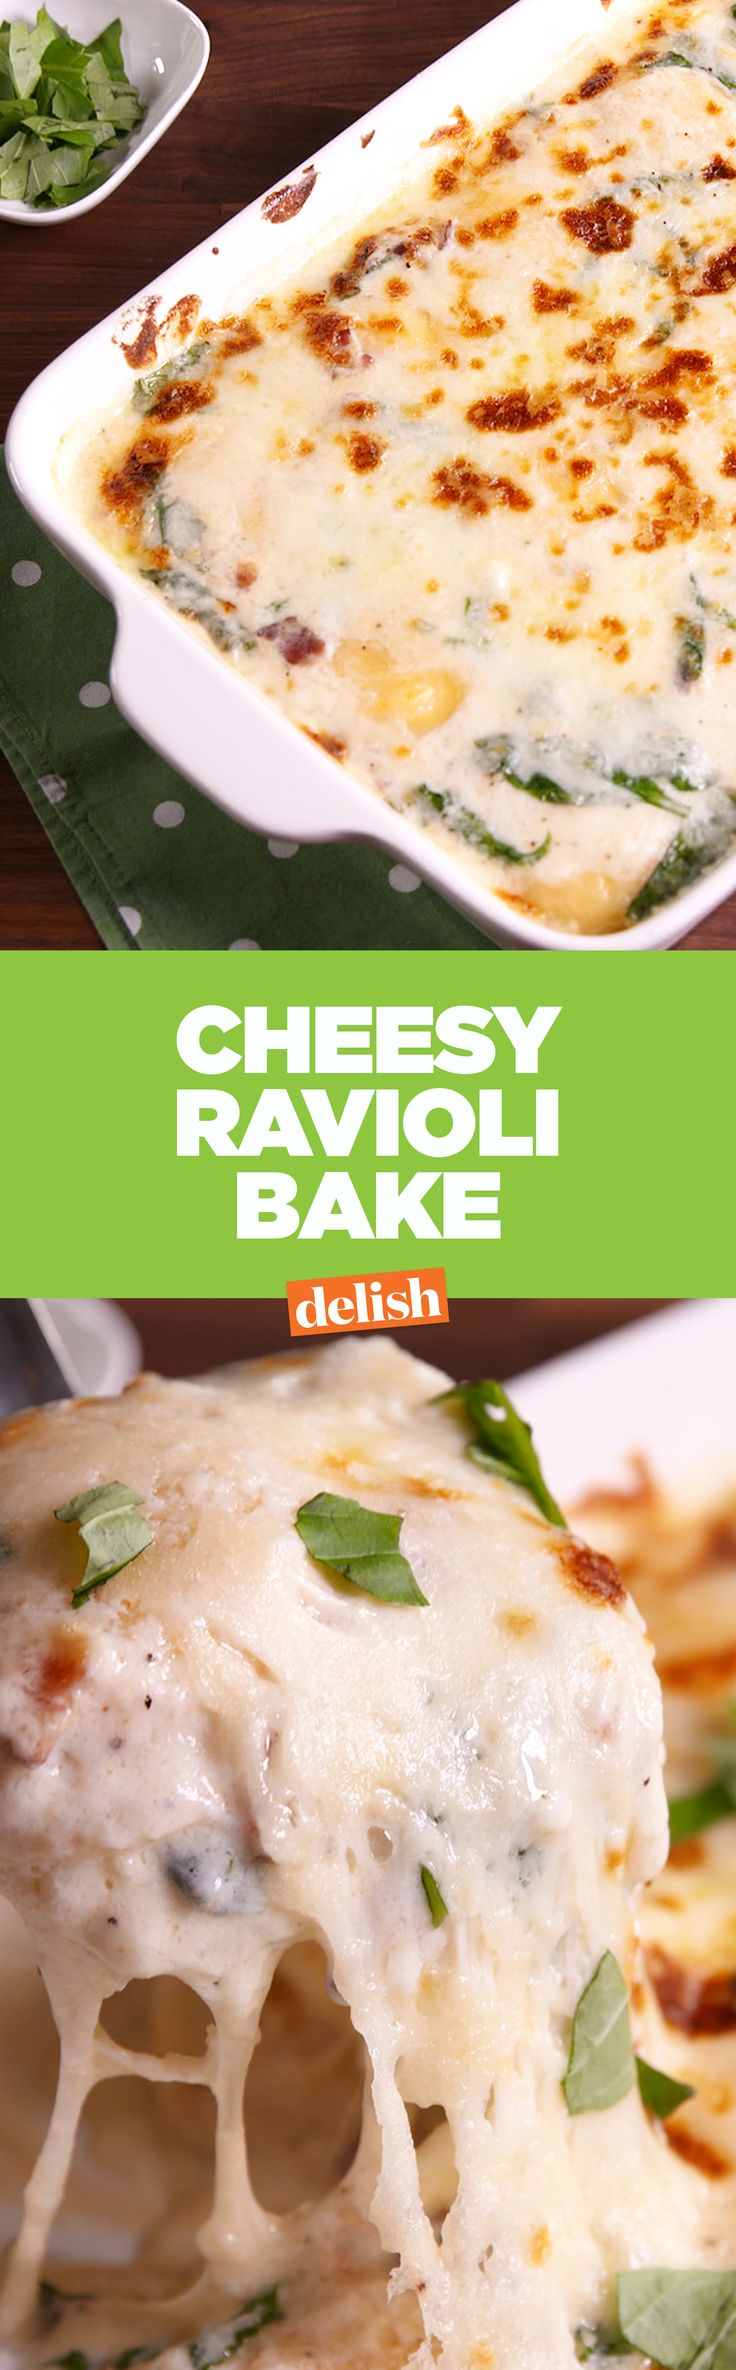 This Cheesy Ravioli Bake is like a casserole for pasta lovers. Get the recipe on Delish.com.